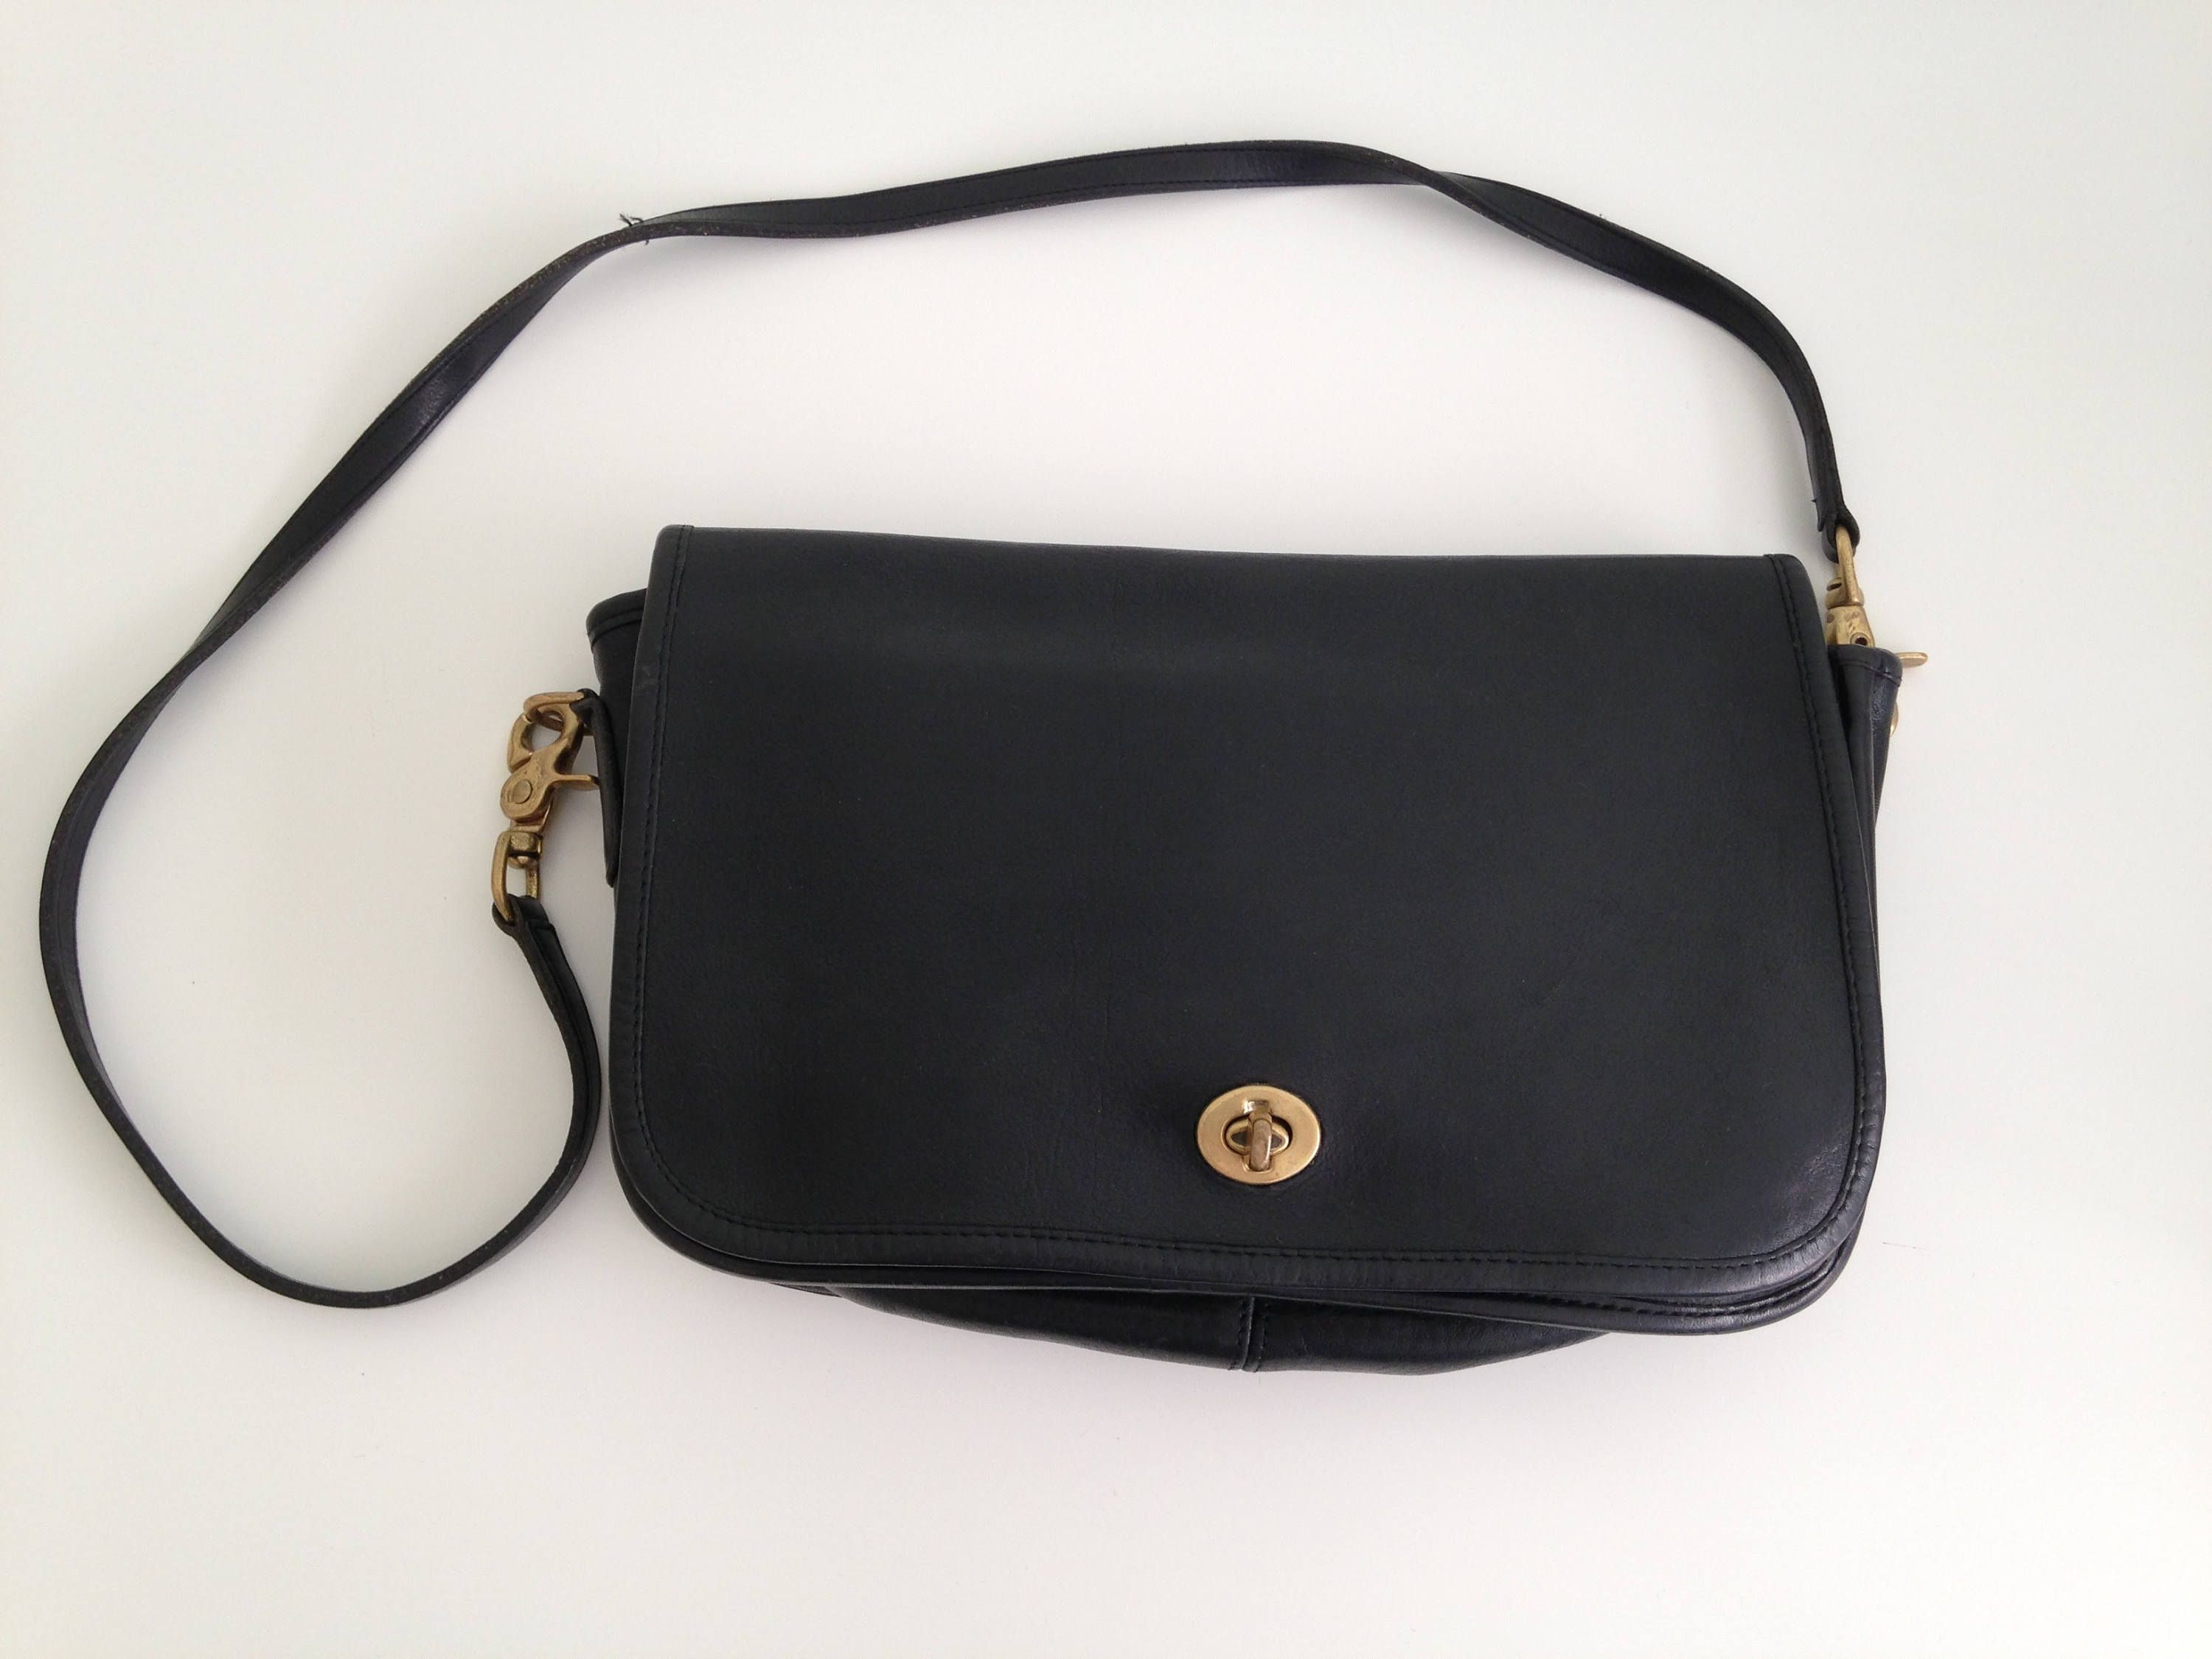 8a0b544607d37 Amazing Coach shoulder purse in black color, made of heavy genuine leather  and brass detailing